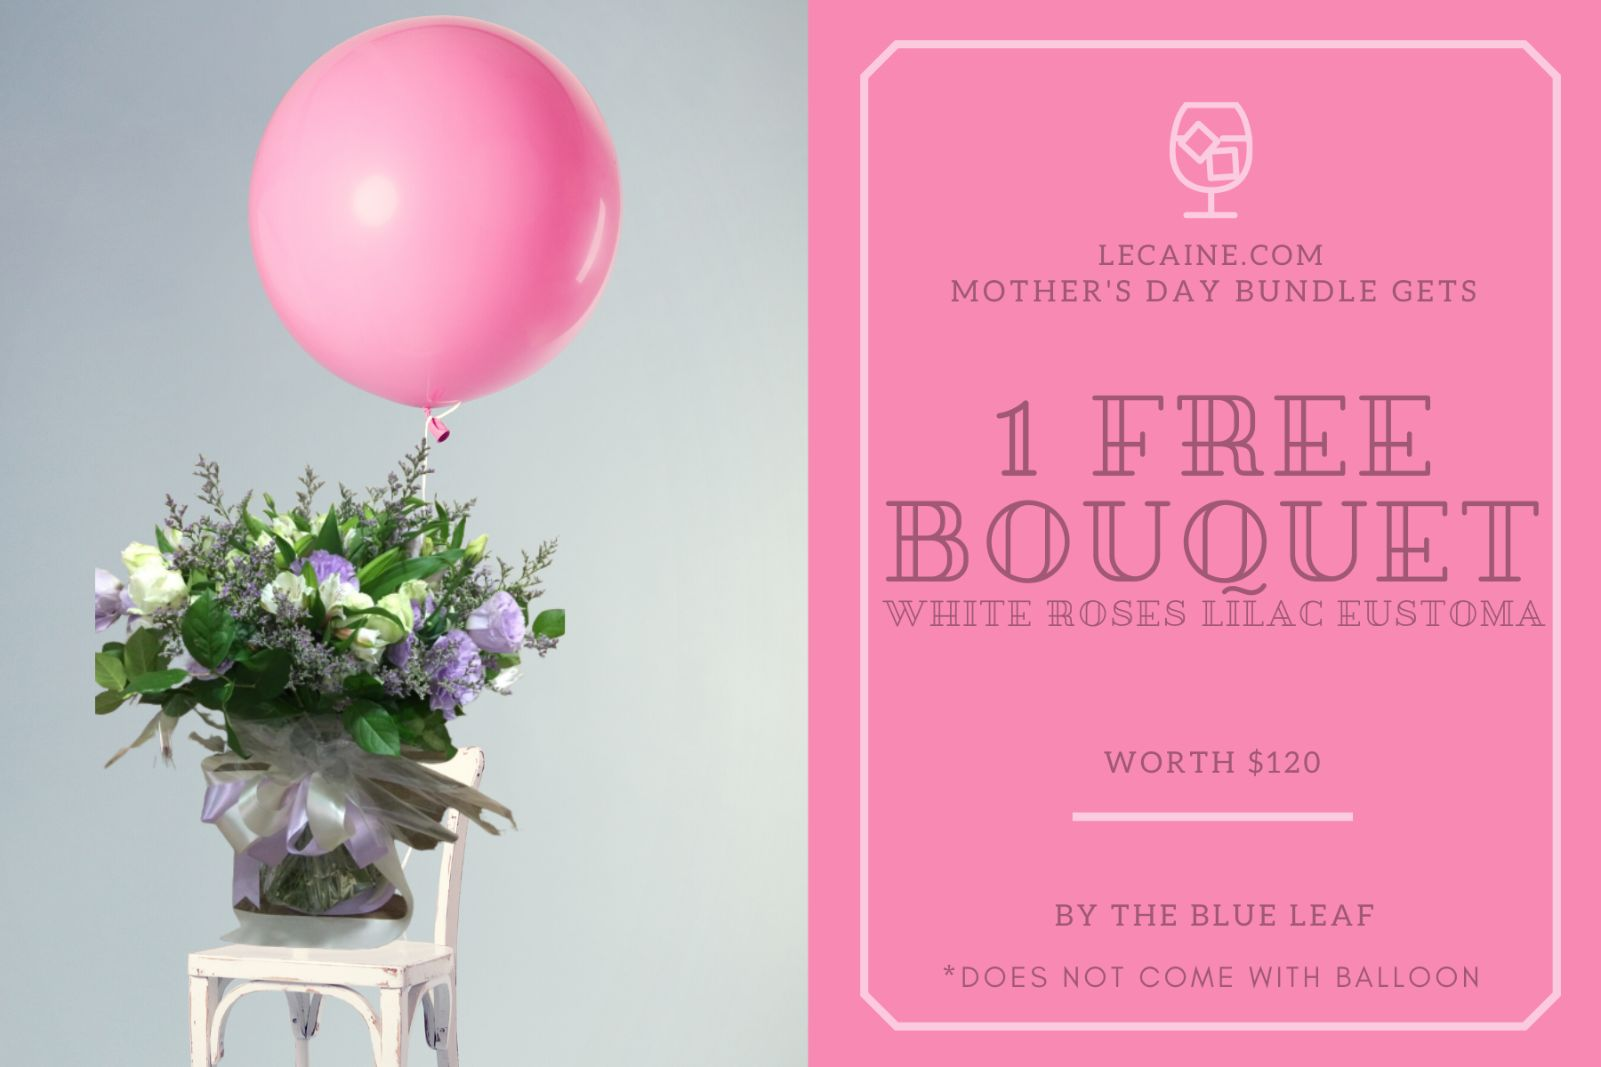 Mother's Day Jewellery Gift Voucher Valued at $388 Singapore Circuit Breaker Home Delivery Prosecco